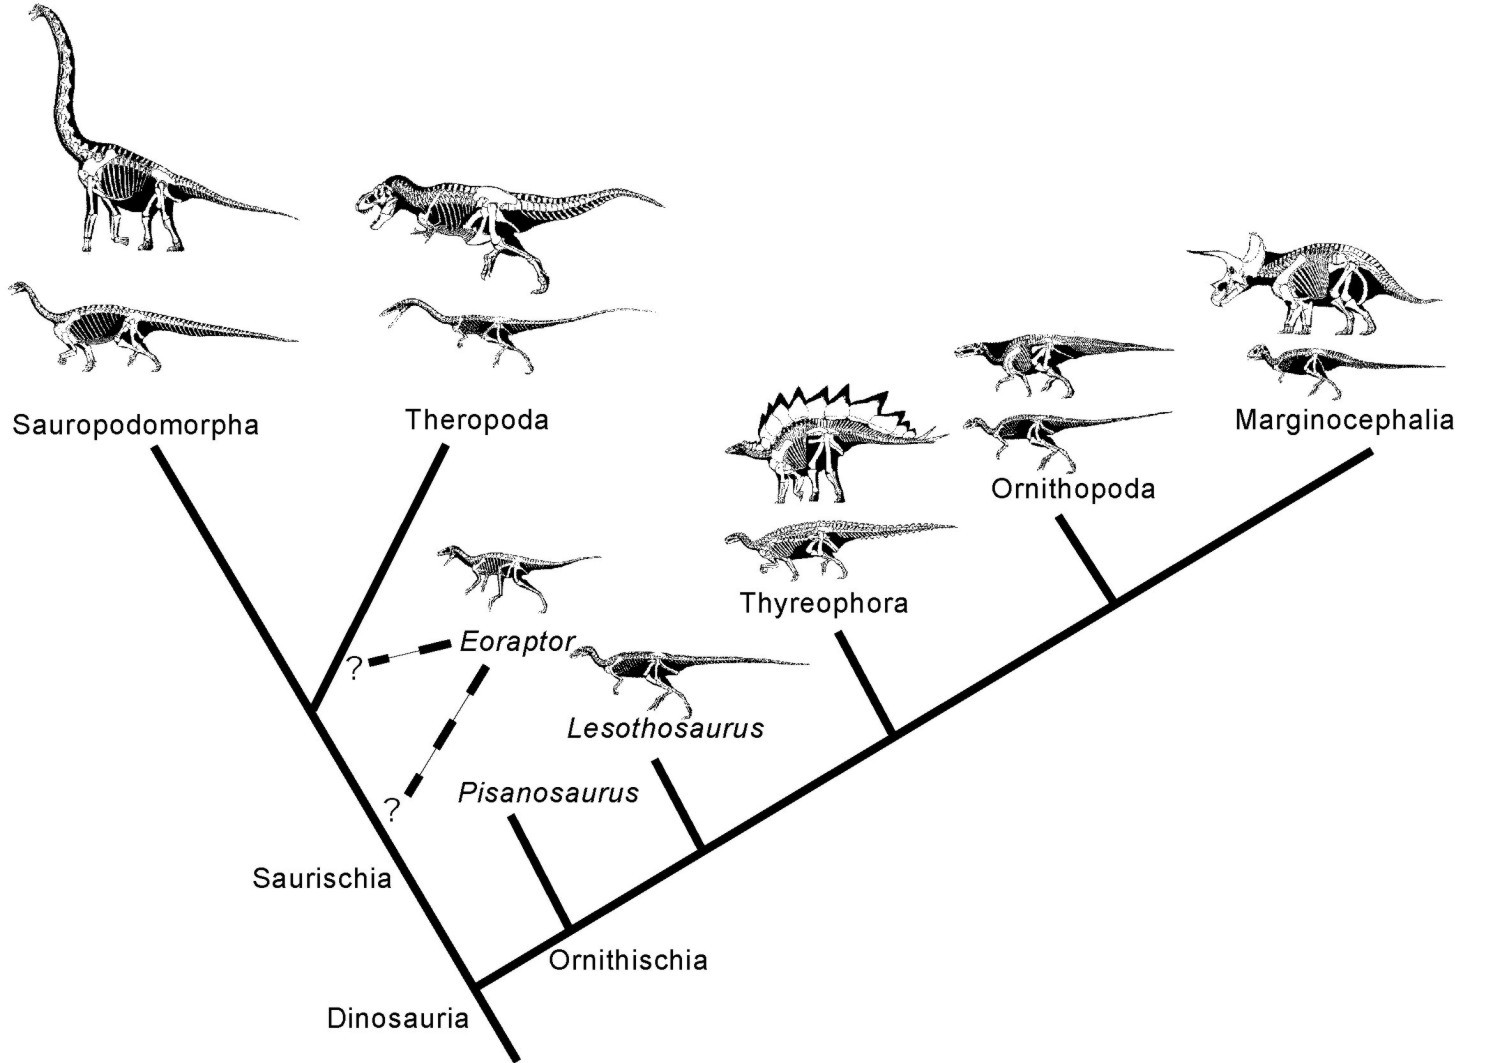 an overview of the relation between the birds and dinosaurs the archeaopteryx Archaeopteryx, generally accepted as being the oldest known bird, is an important link between birds and other coelurosaurs that has helped to illuminate the evolutionary history (phylogeny) of the group it is now widely held to be the ancestor of all living birds this is a common misconception.